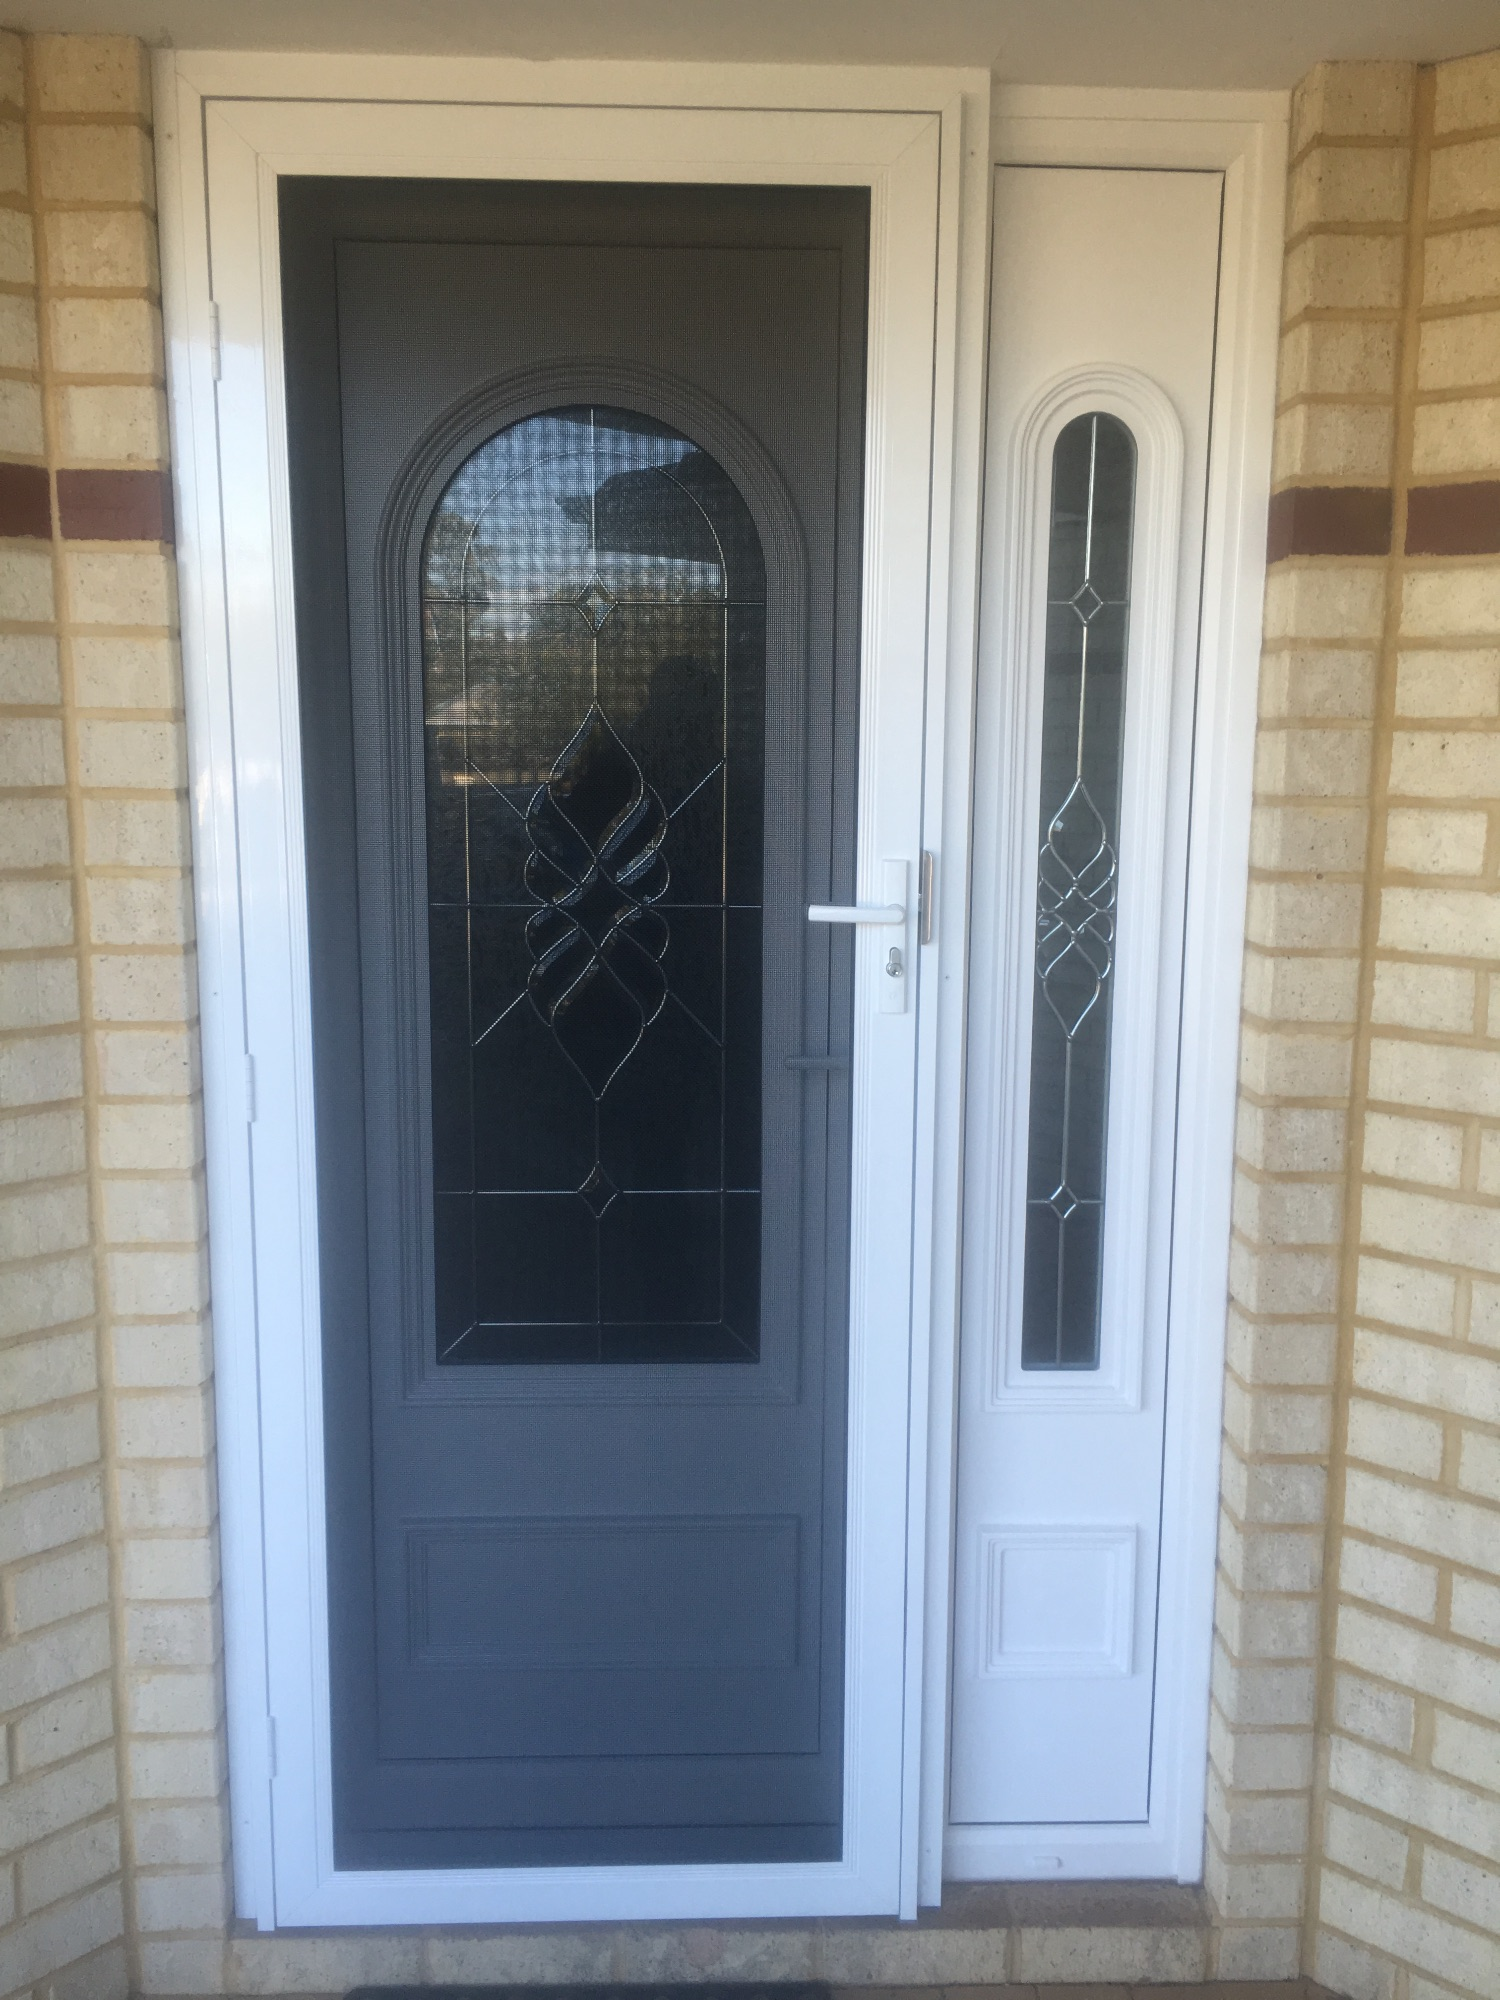 Stainless Steel Screens Perth